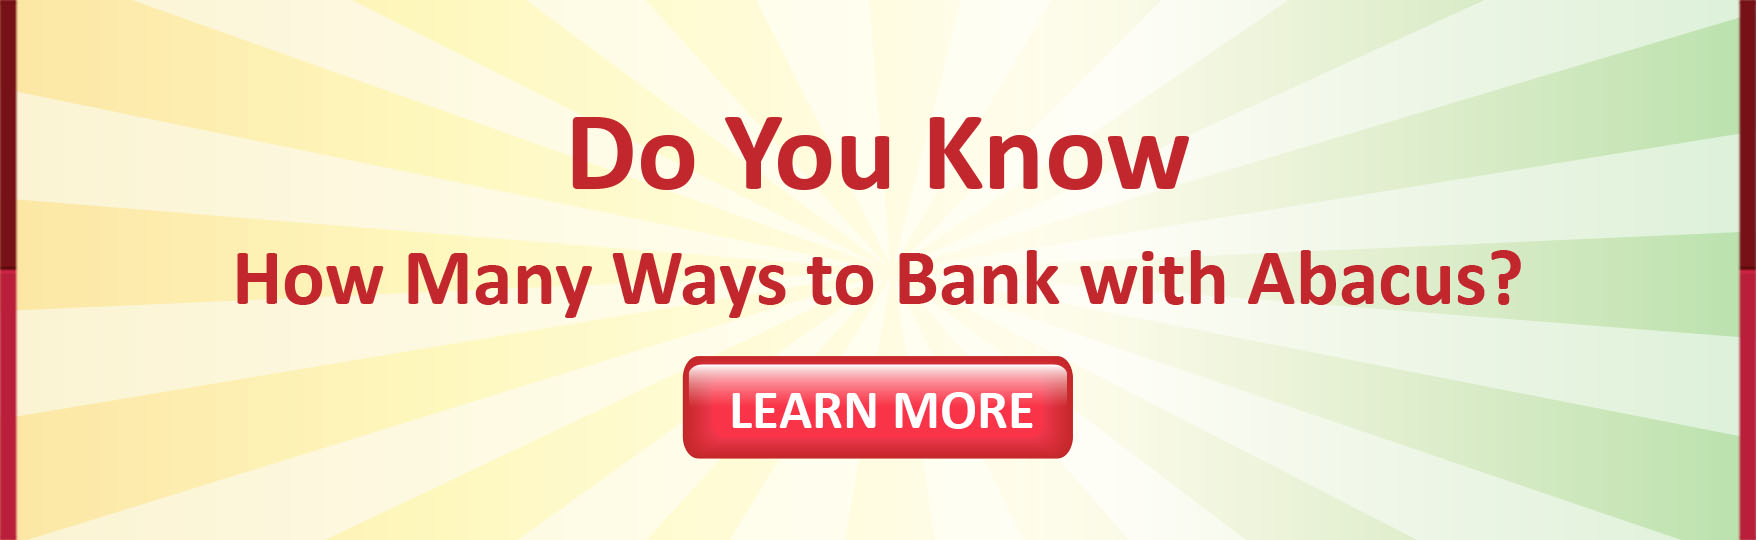 Do you know how many ways to bank with Abacus? learn more